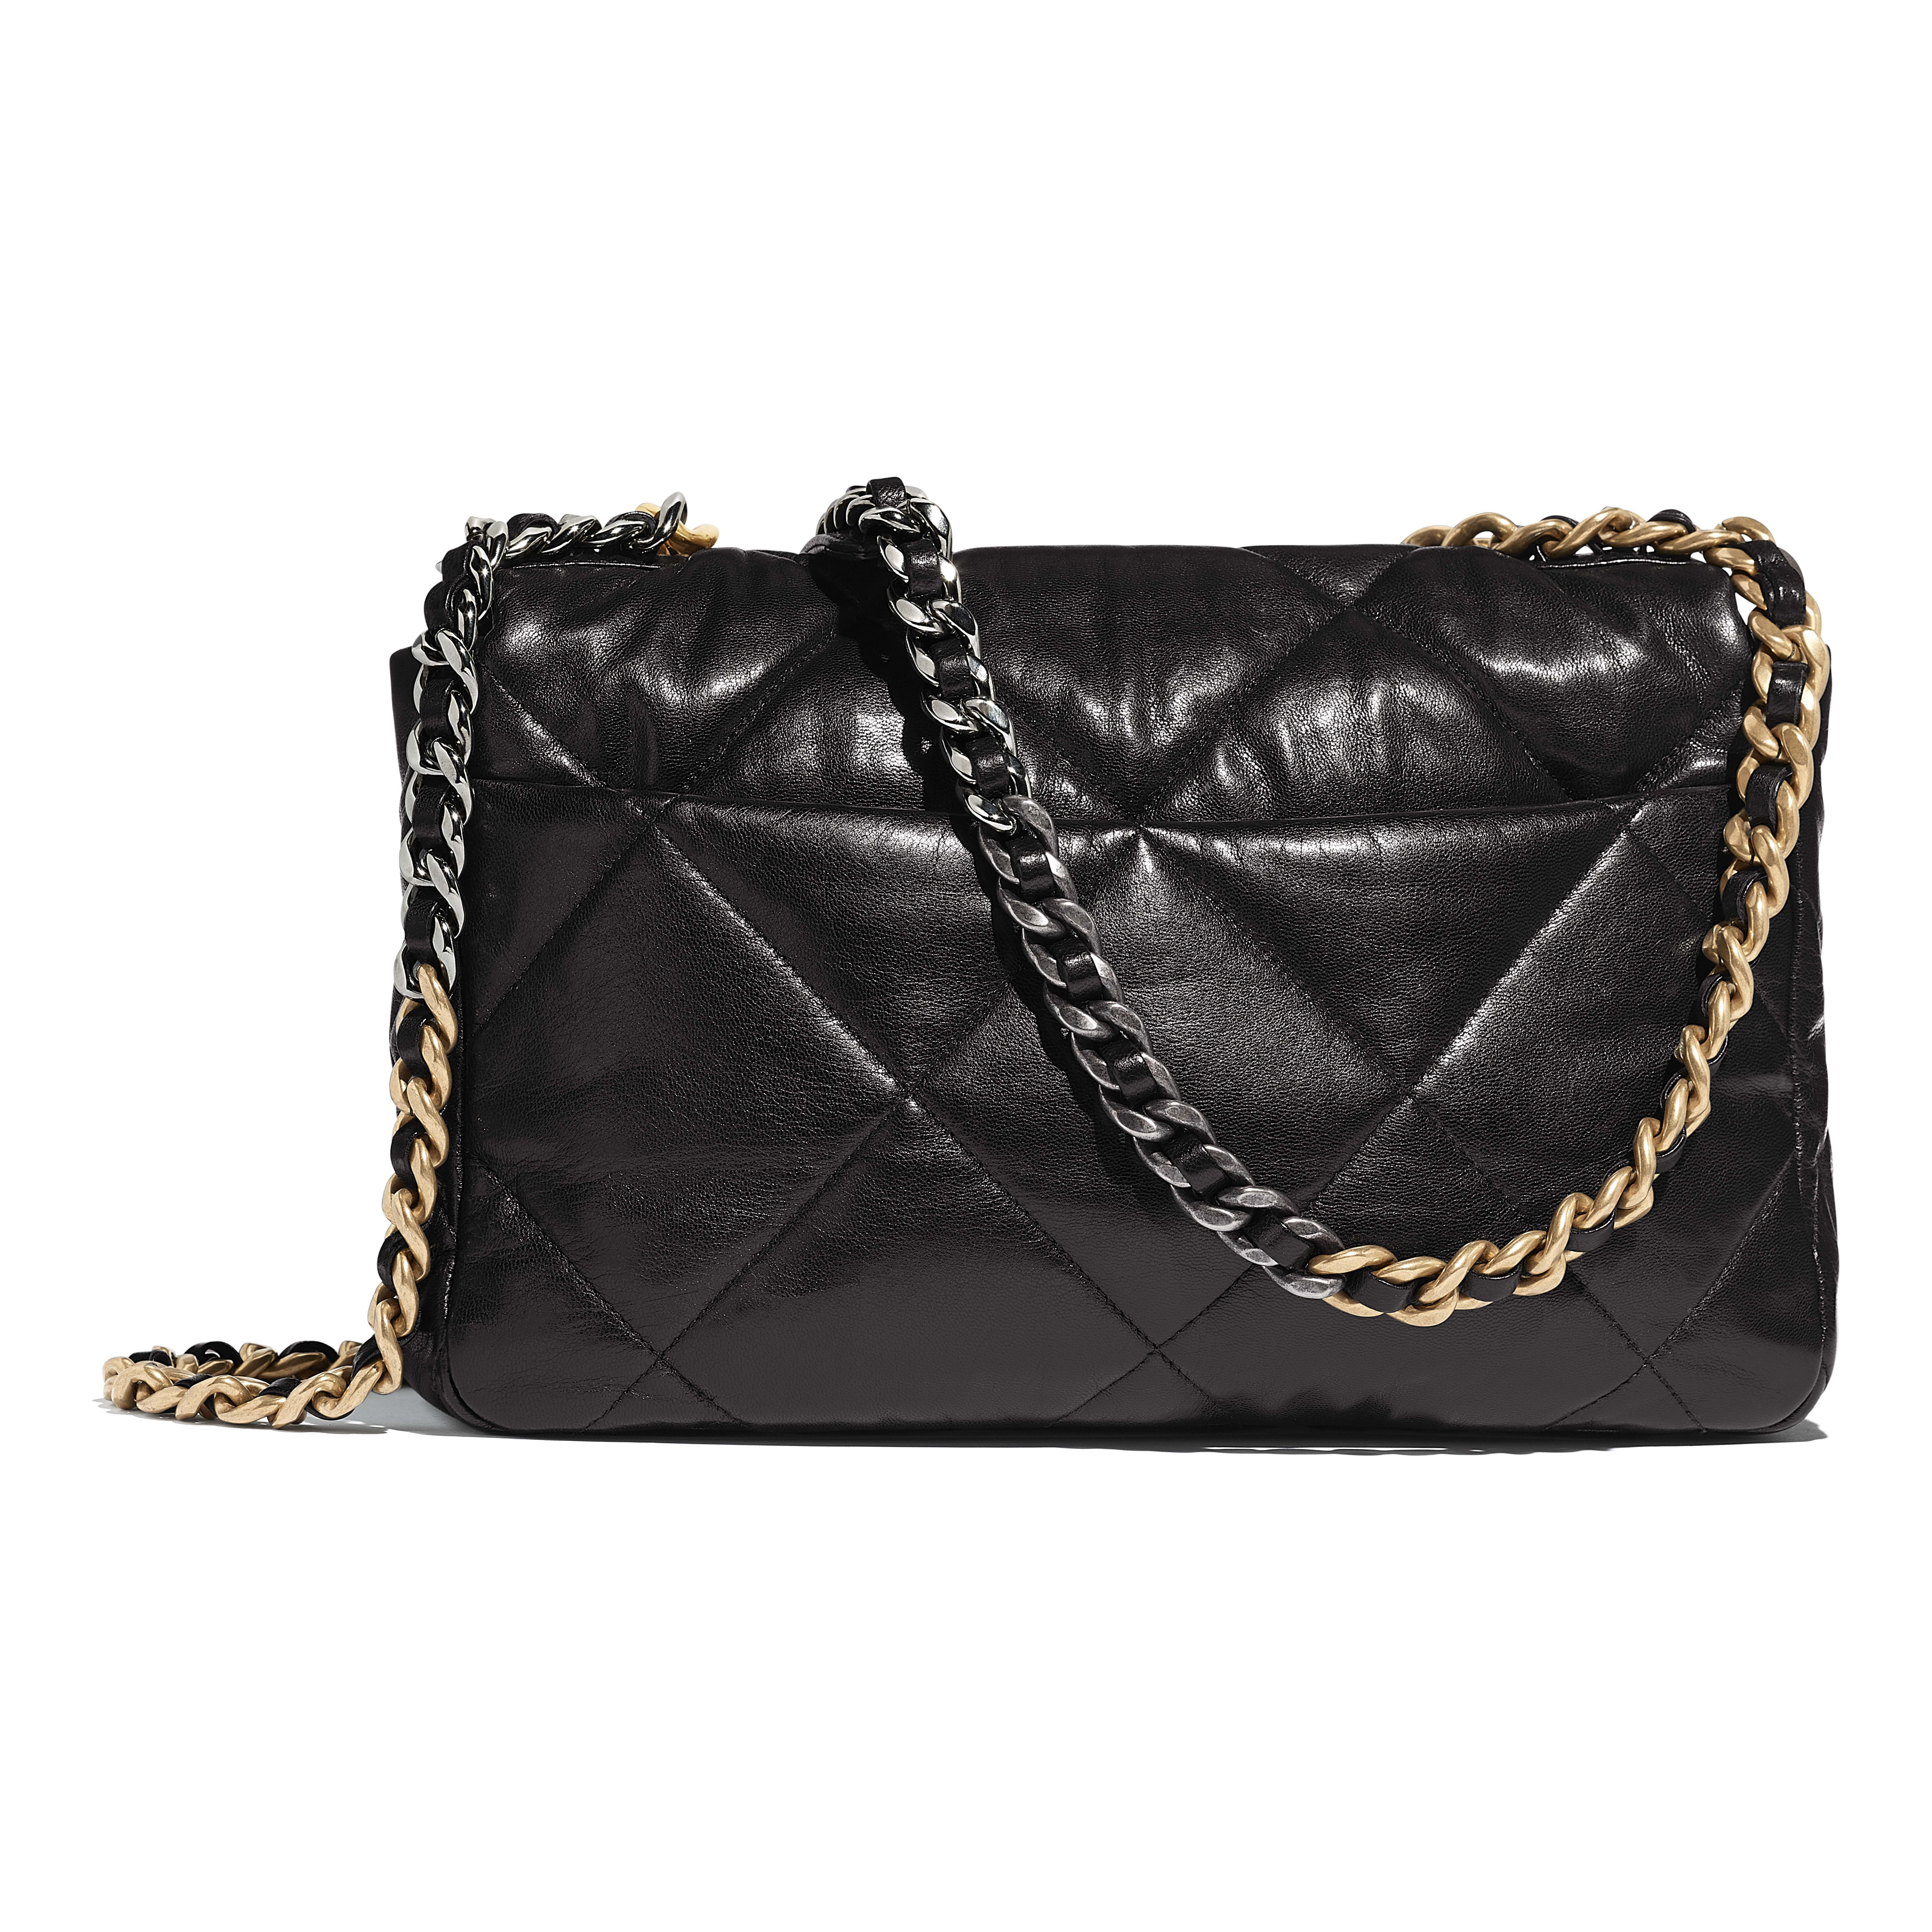 CHANEL 19 Large Flap Bag - Black - Lambskin, Gold-Tone, Silver-Tone & Ruthenium-Finish Metal - CHANEL - Alternative view - see standard sized version